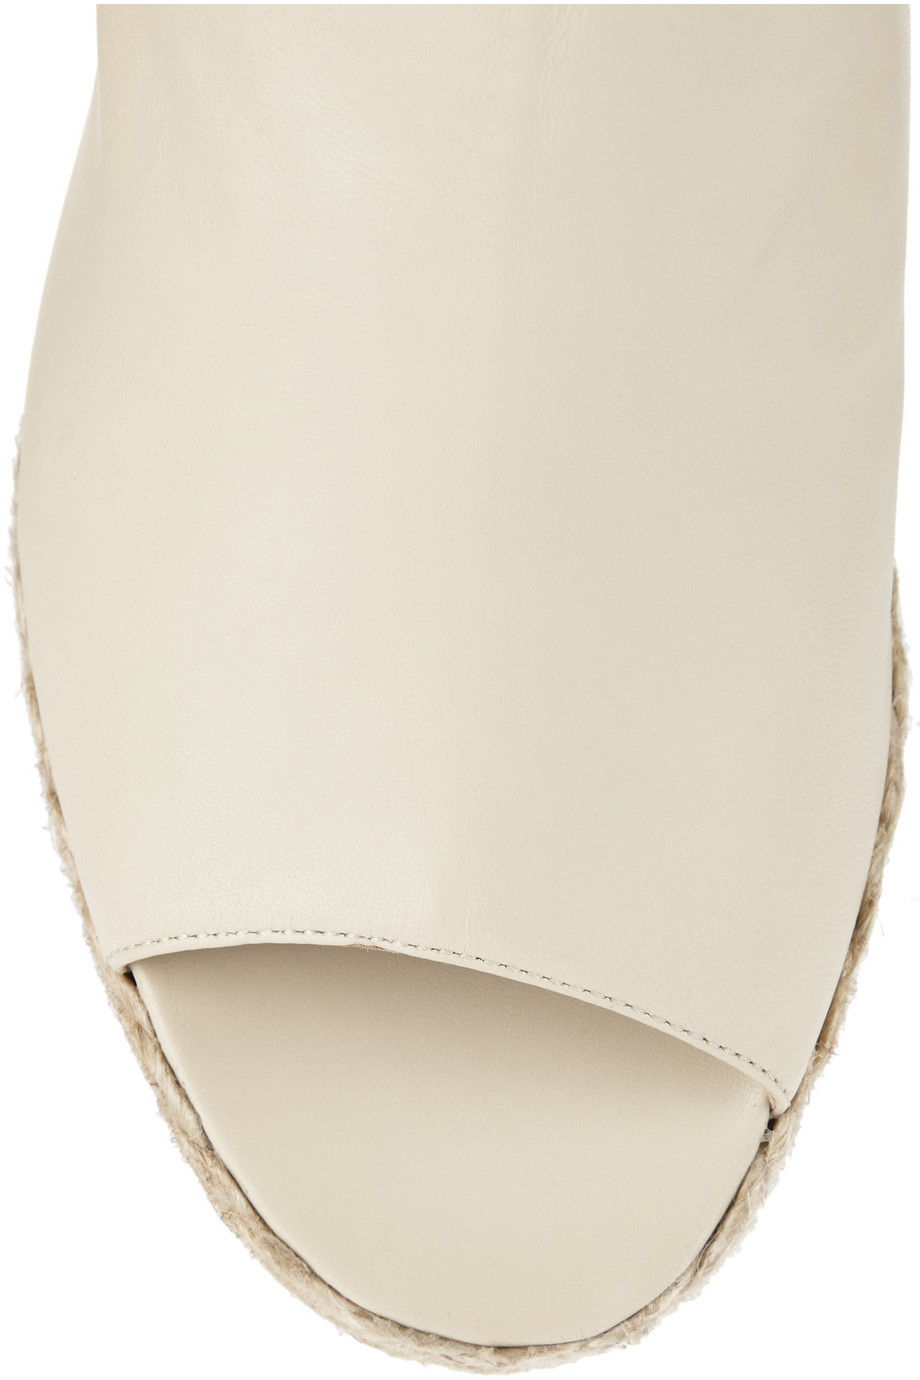 Gayle Porter >> Lyst - Paloma Barceló Leather Espadrille Mules in Natural